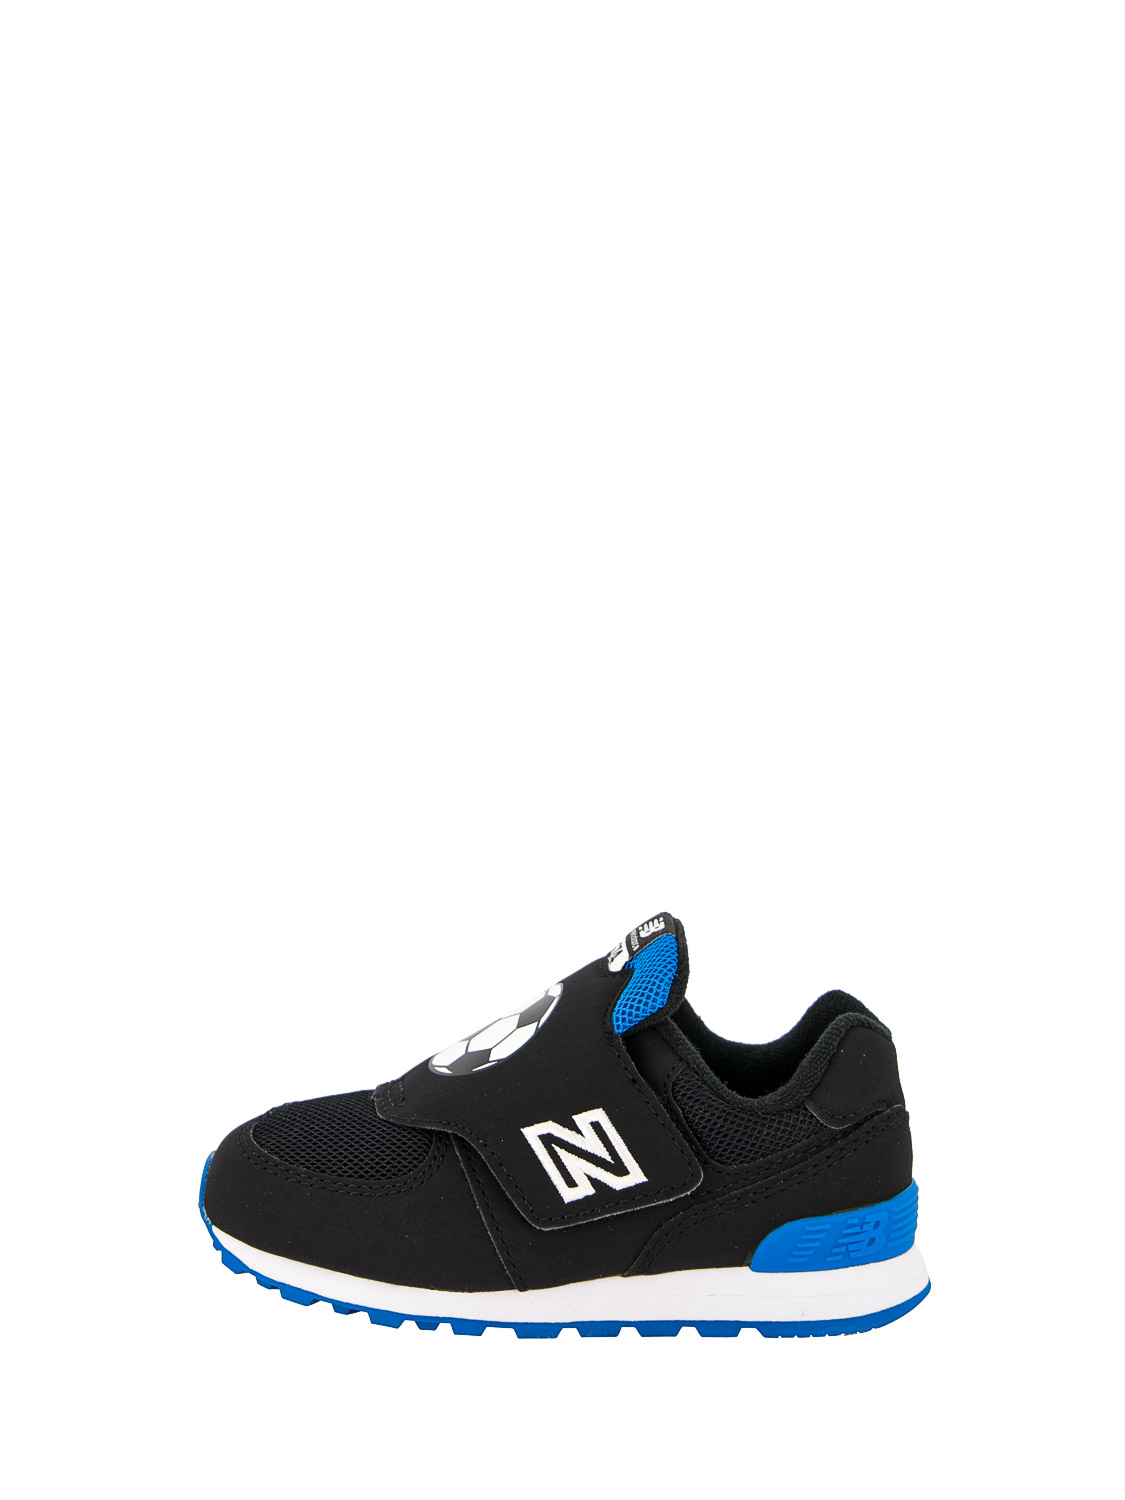 New Balance Shoes KIDS SNEAKERS FOR BOYS